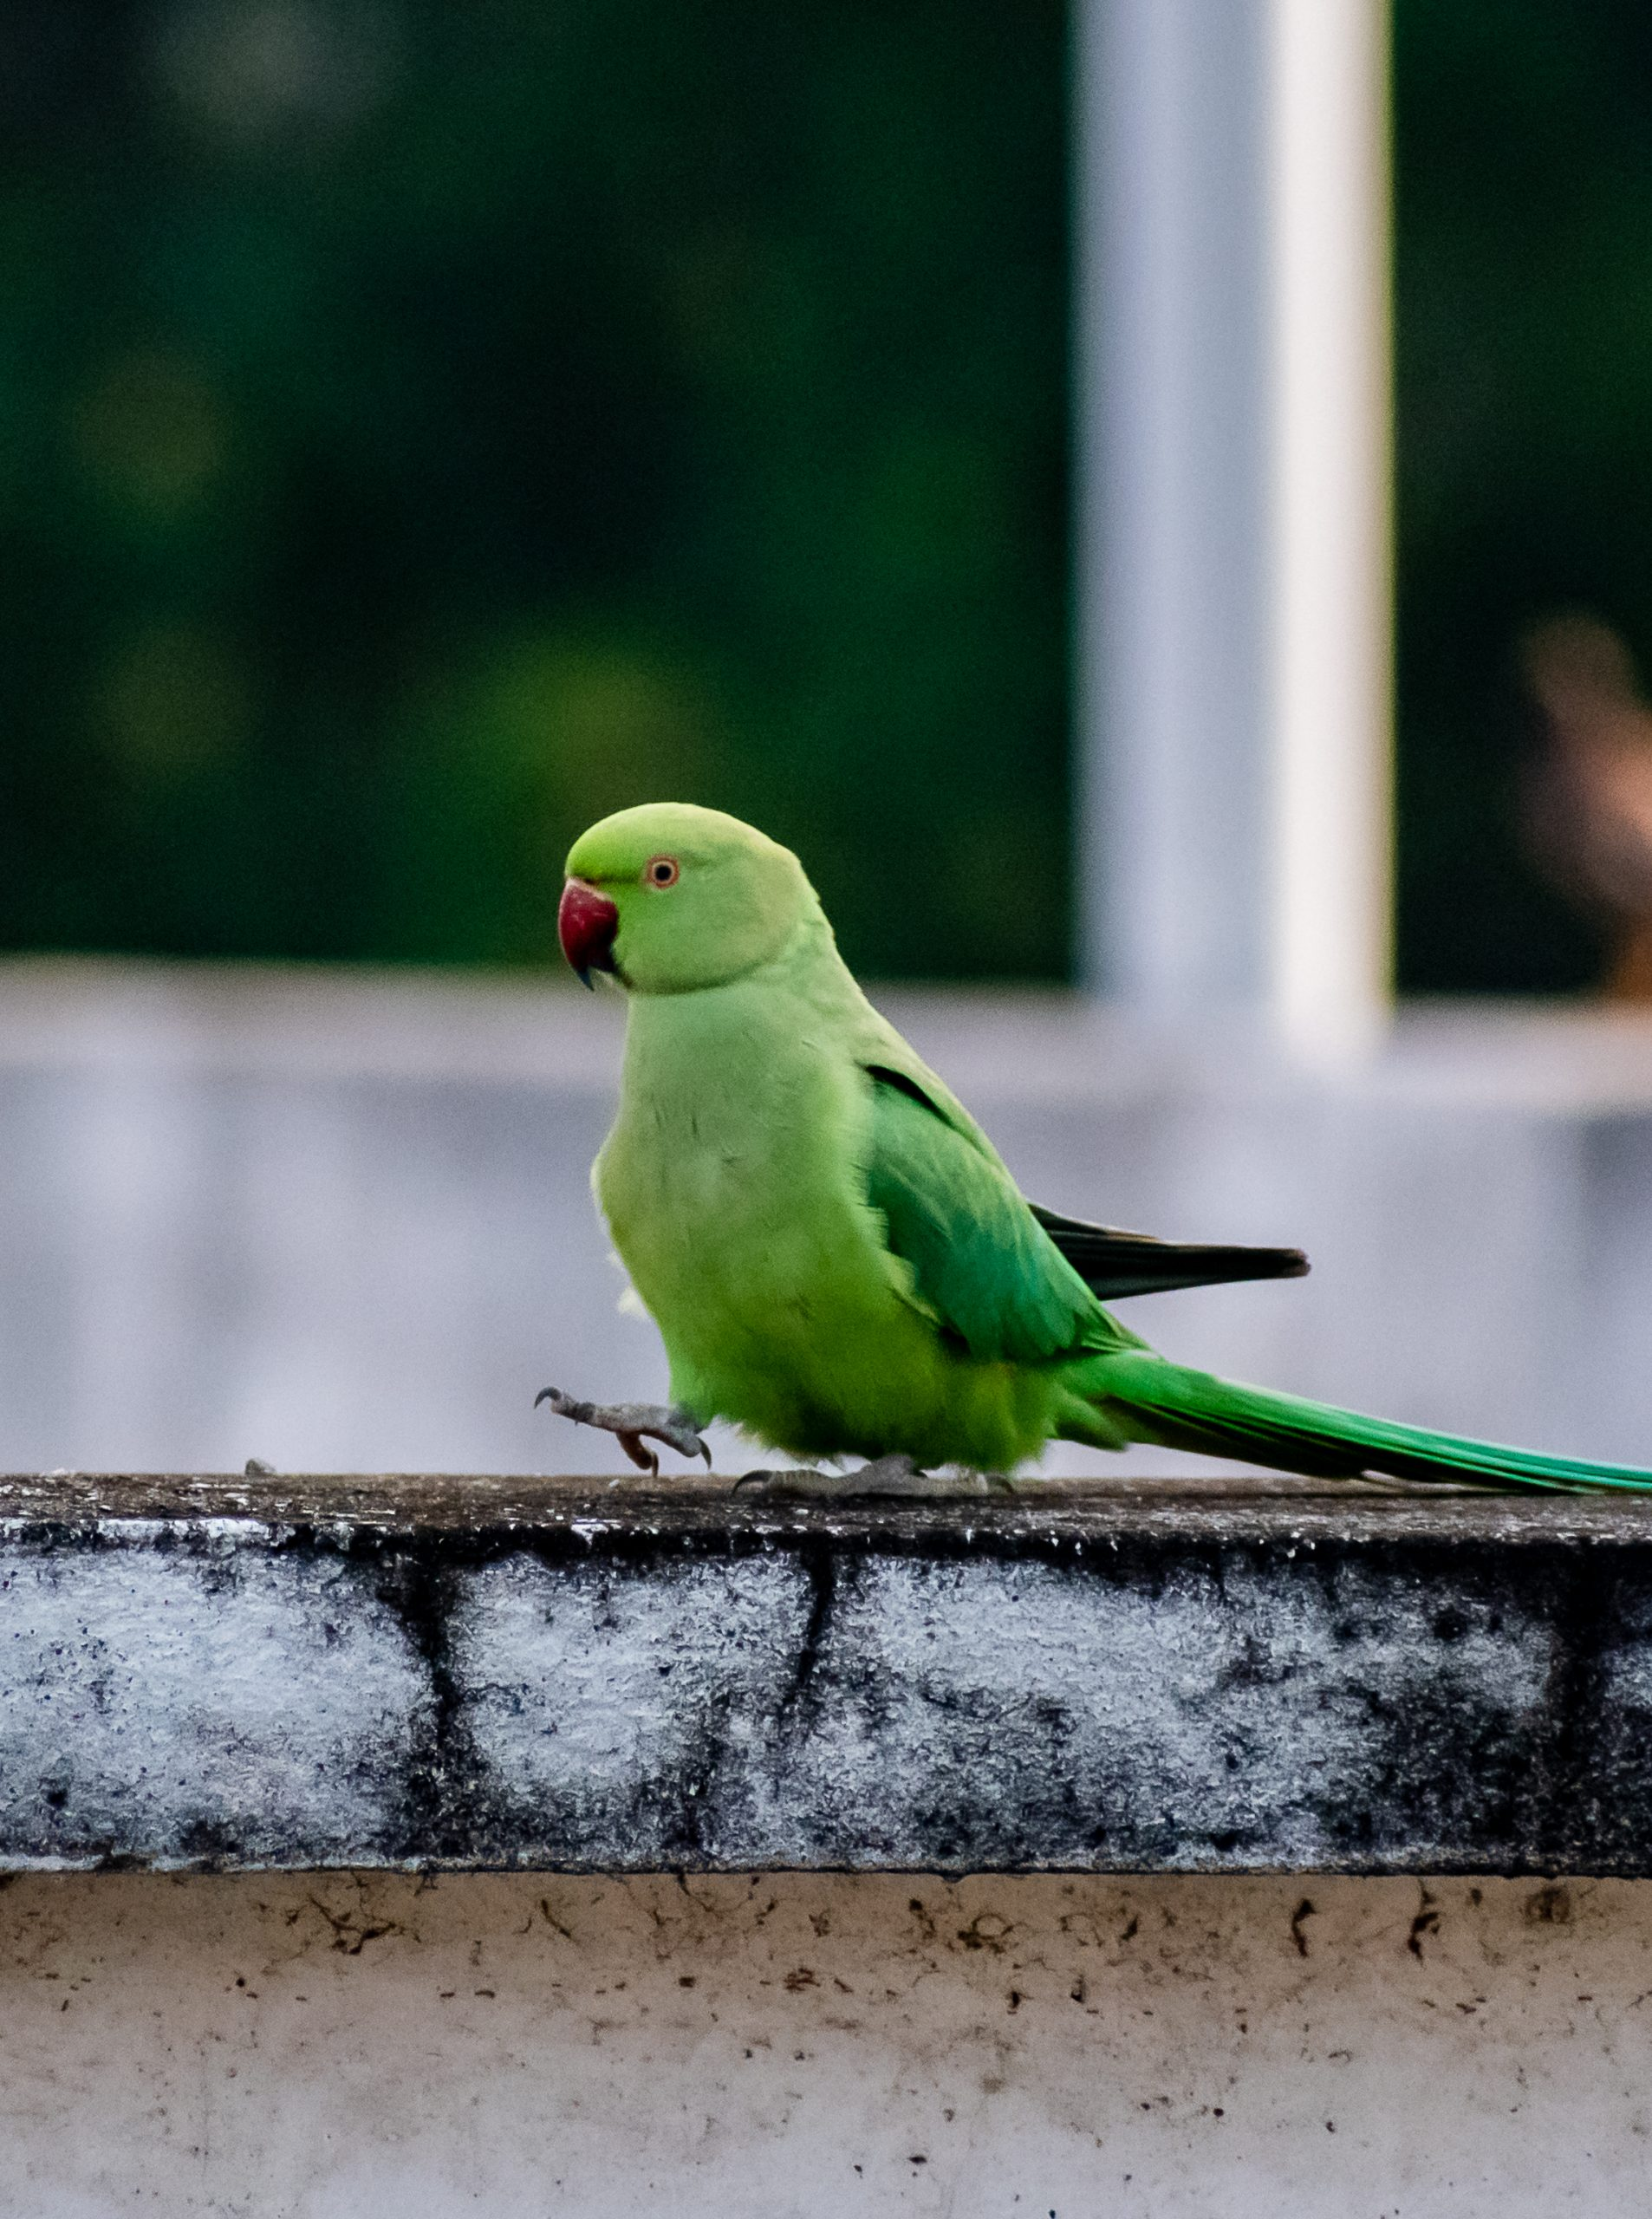 Indian Ringneck Parrot siiting on a wall.